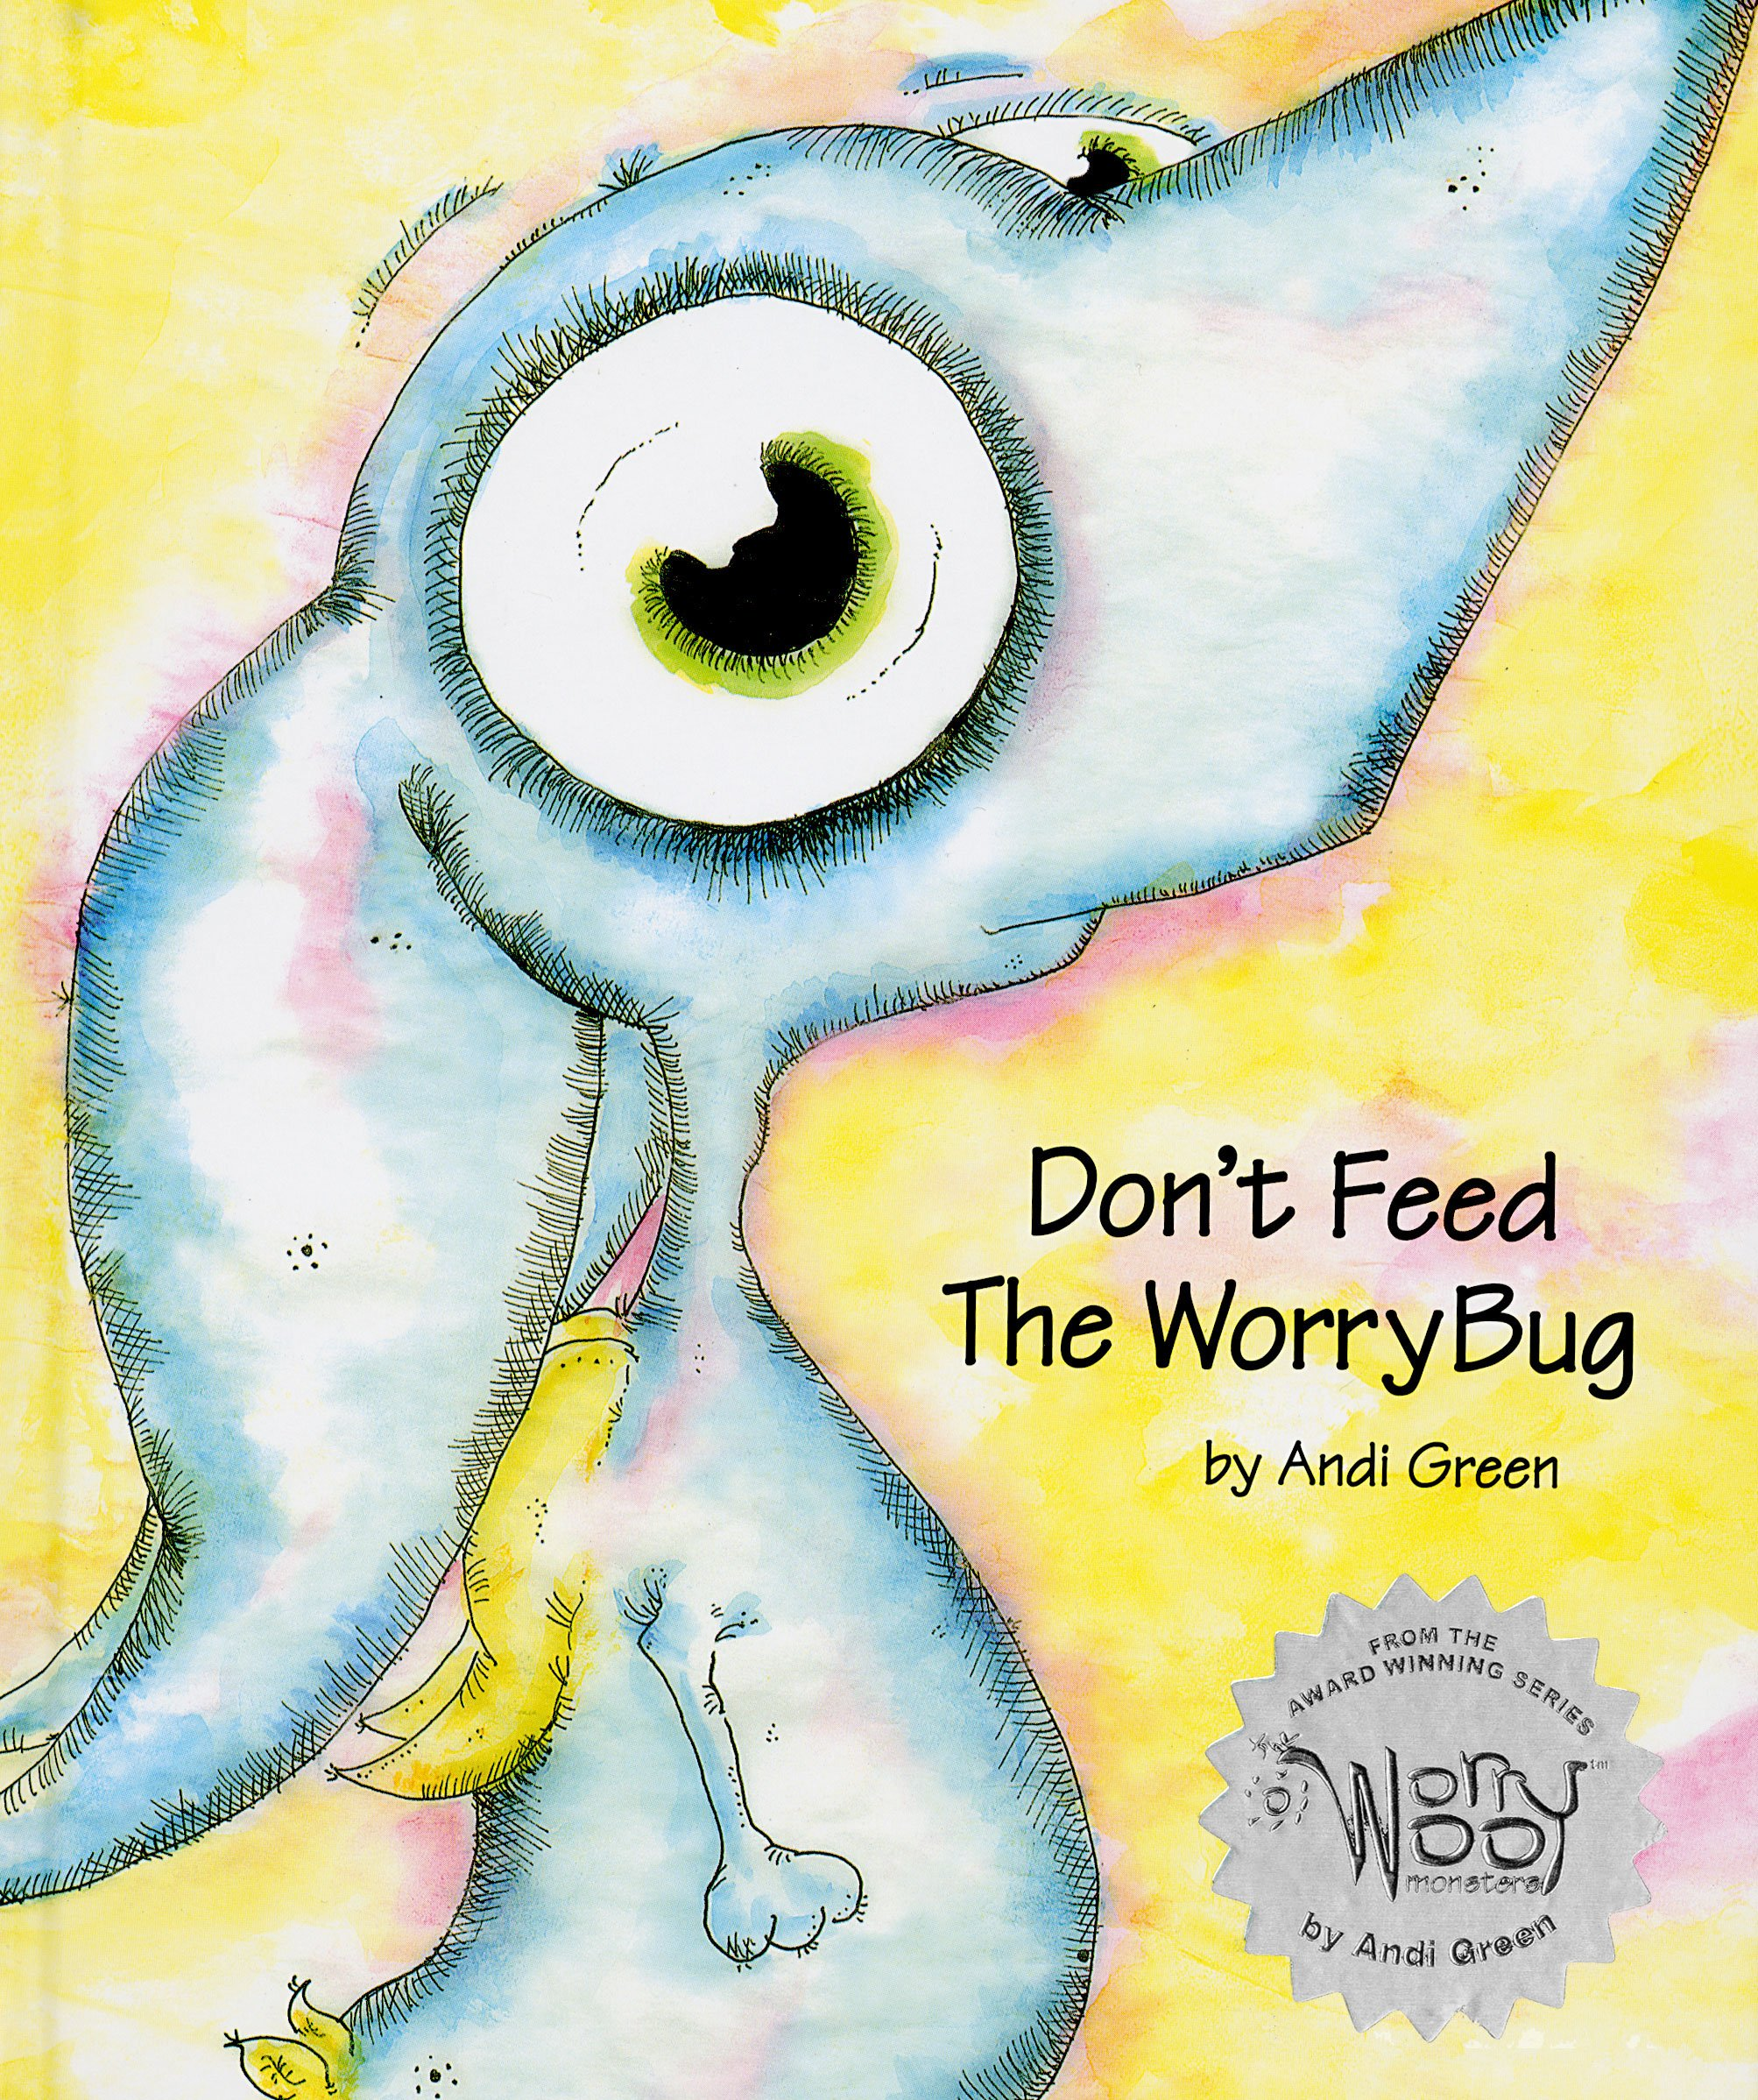 Don't Feed The WorryBug by Andi Green